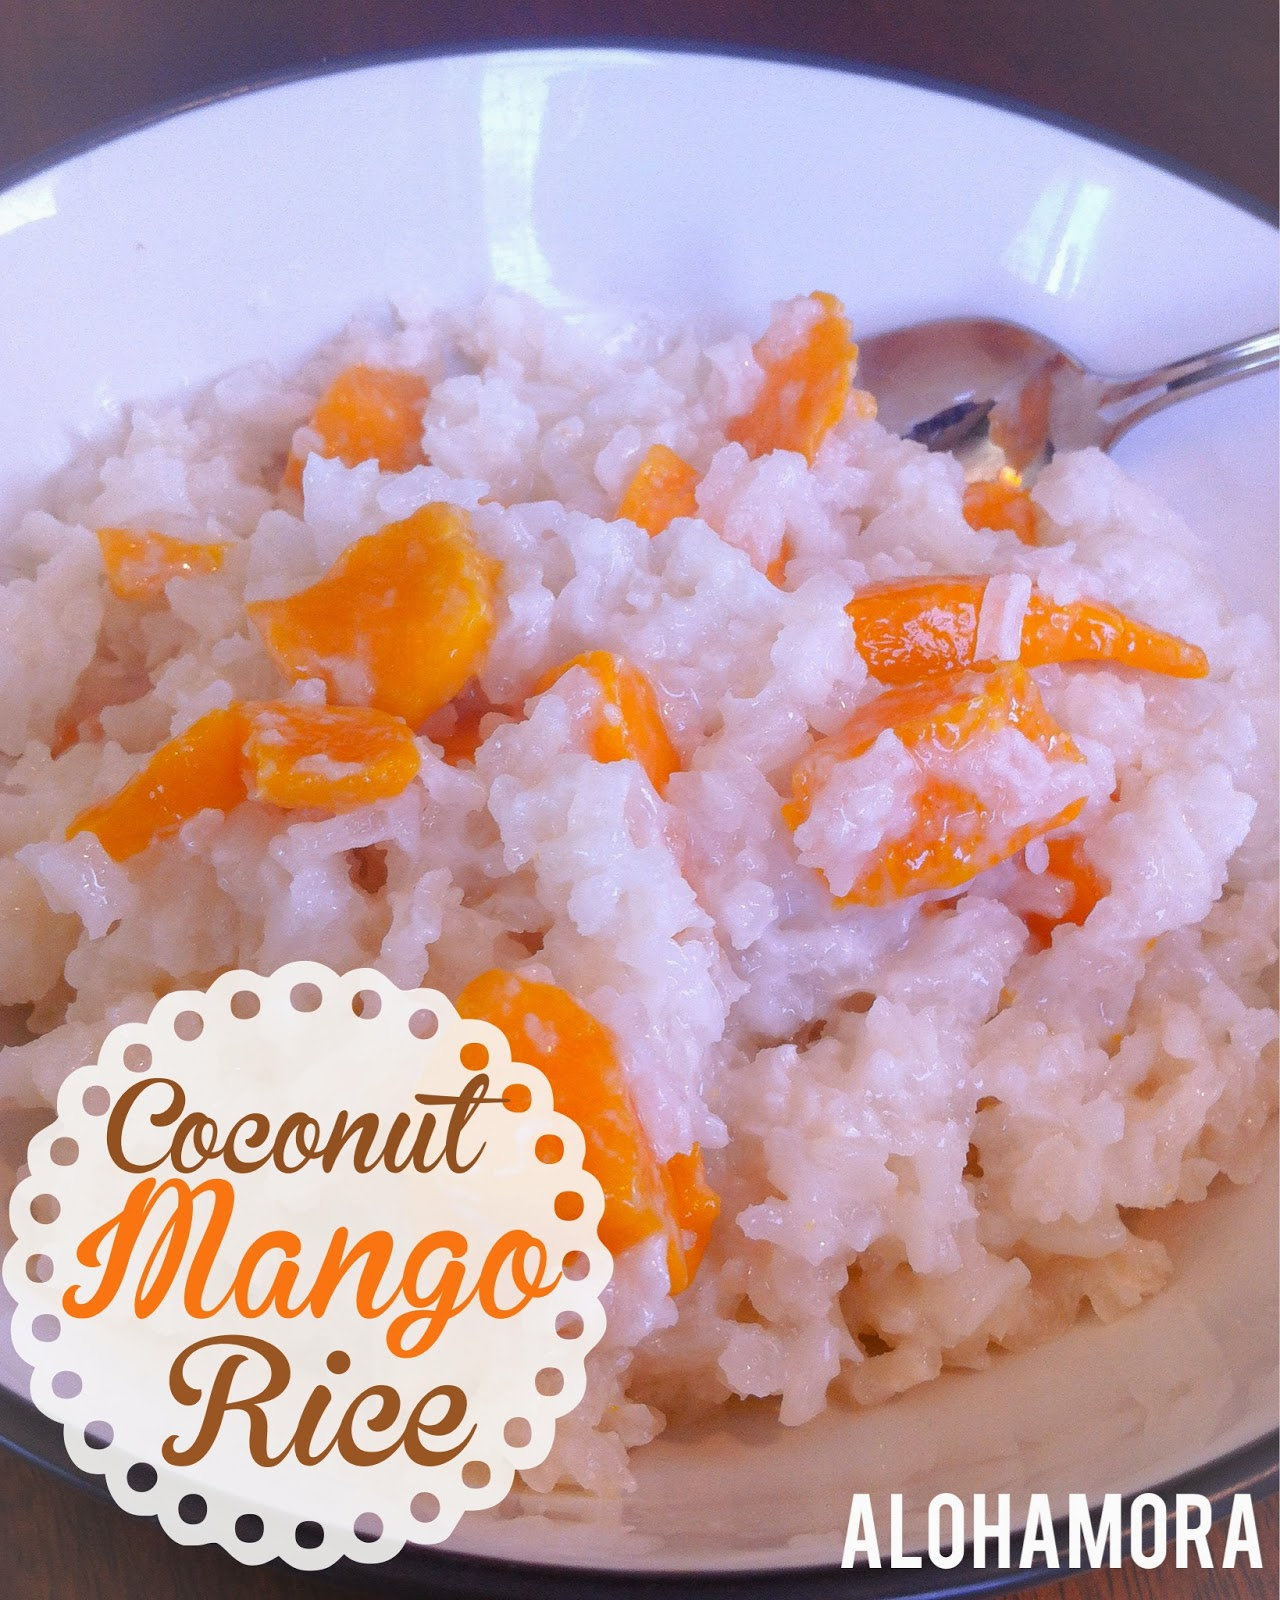 Thai coconut Mango Rice.  Sticky sweet goodness that's delicious for dessert warm or for breakfast cold. Alohamora Open a Book http://alohamoraopenabook.blogspot.com/